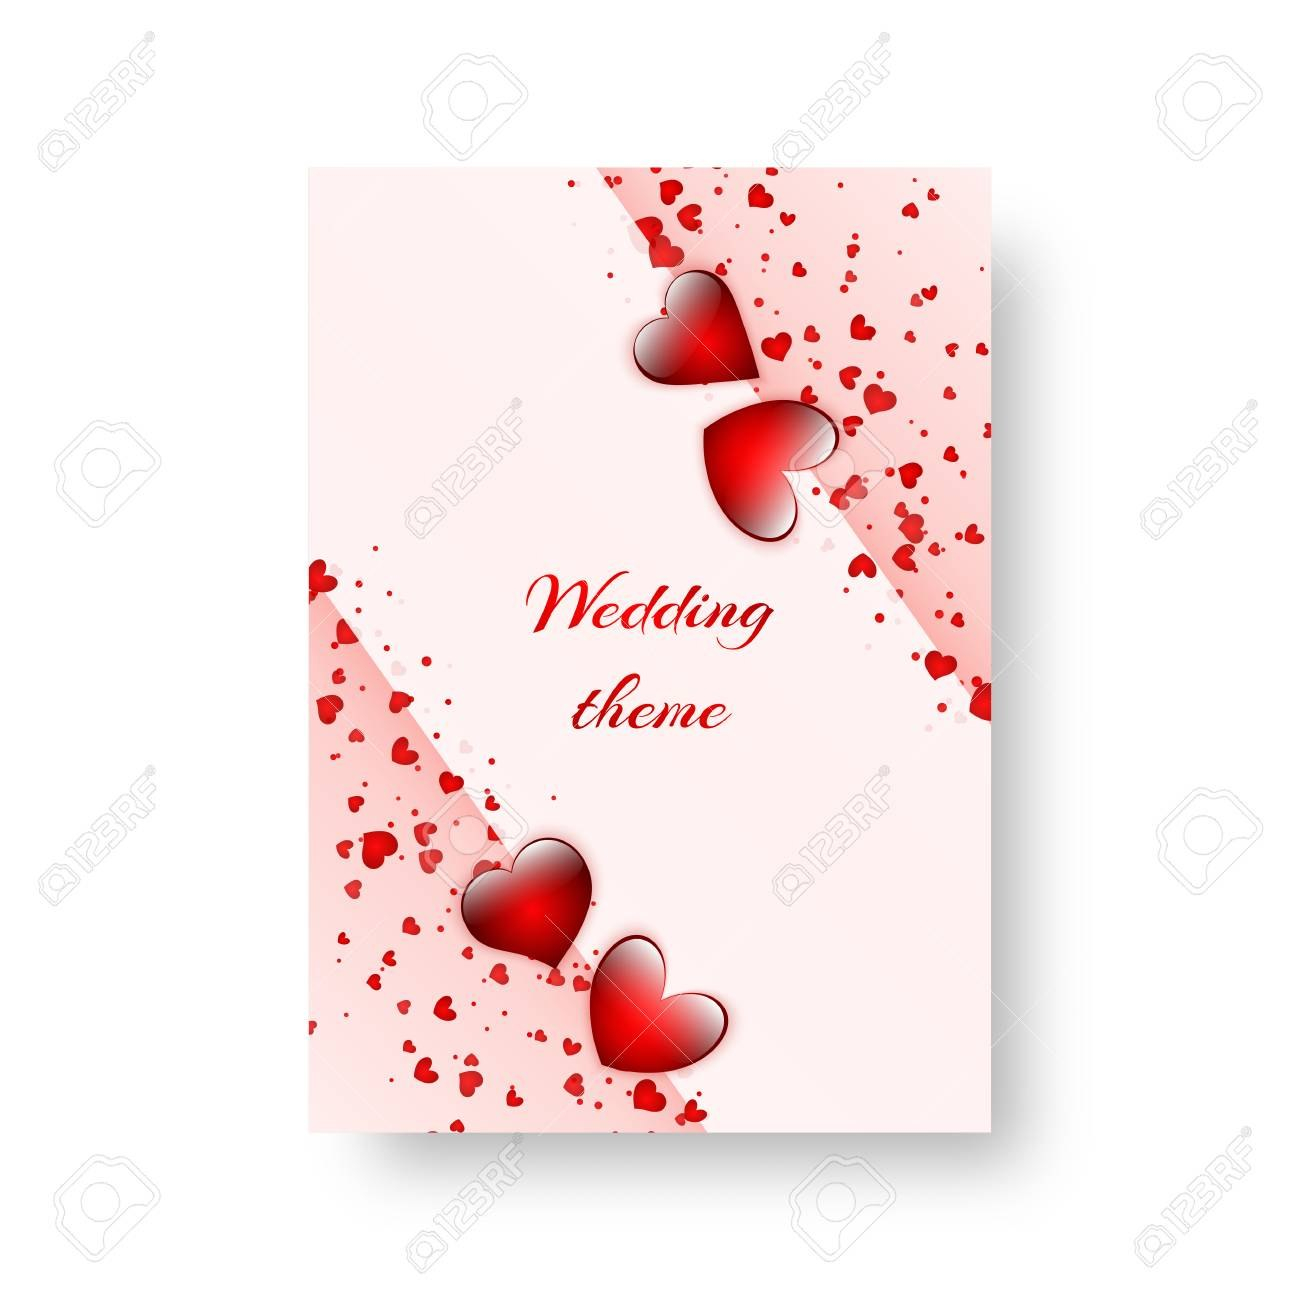 Romantic Invitation Template For St Valentine's Day Or Birthday Within Valentine Party Invitation Template